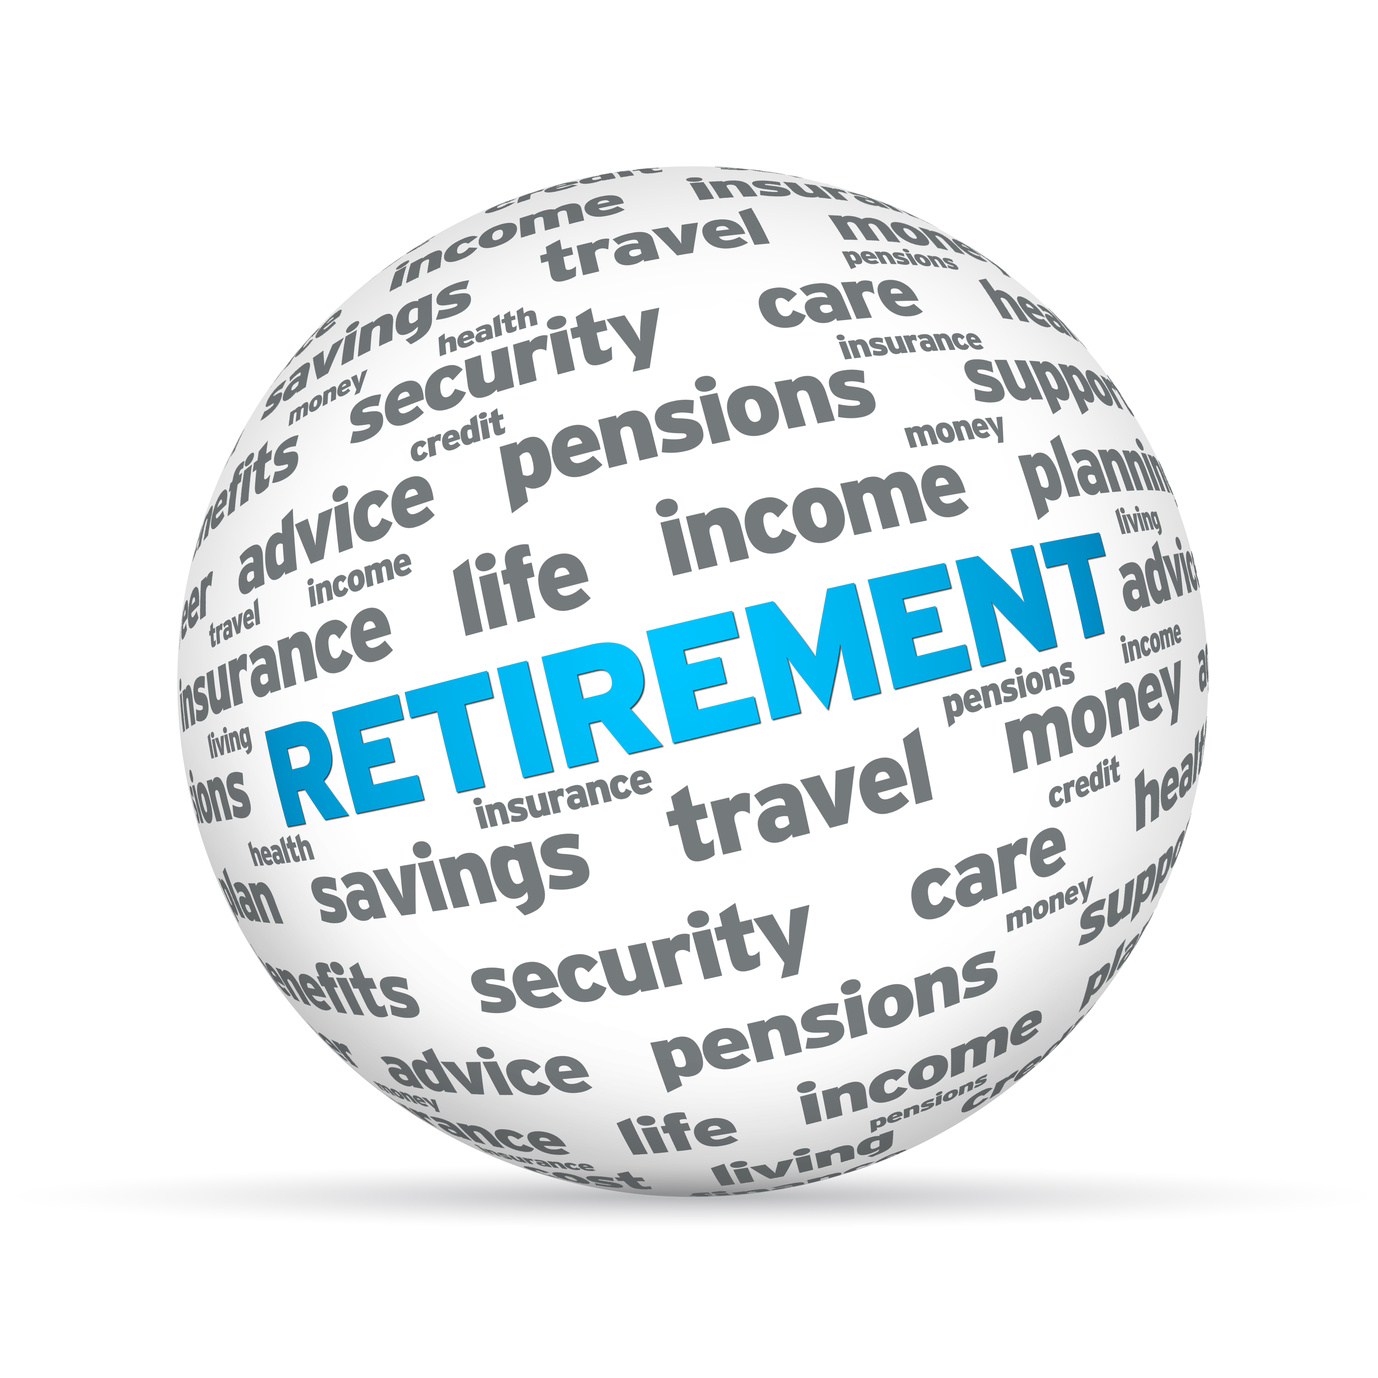 So What Will You Do in Retirement?